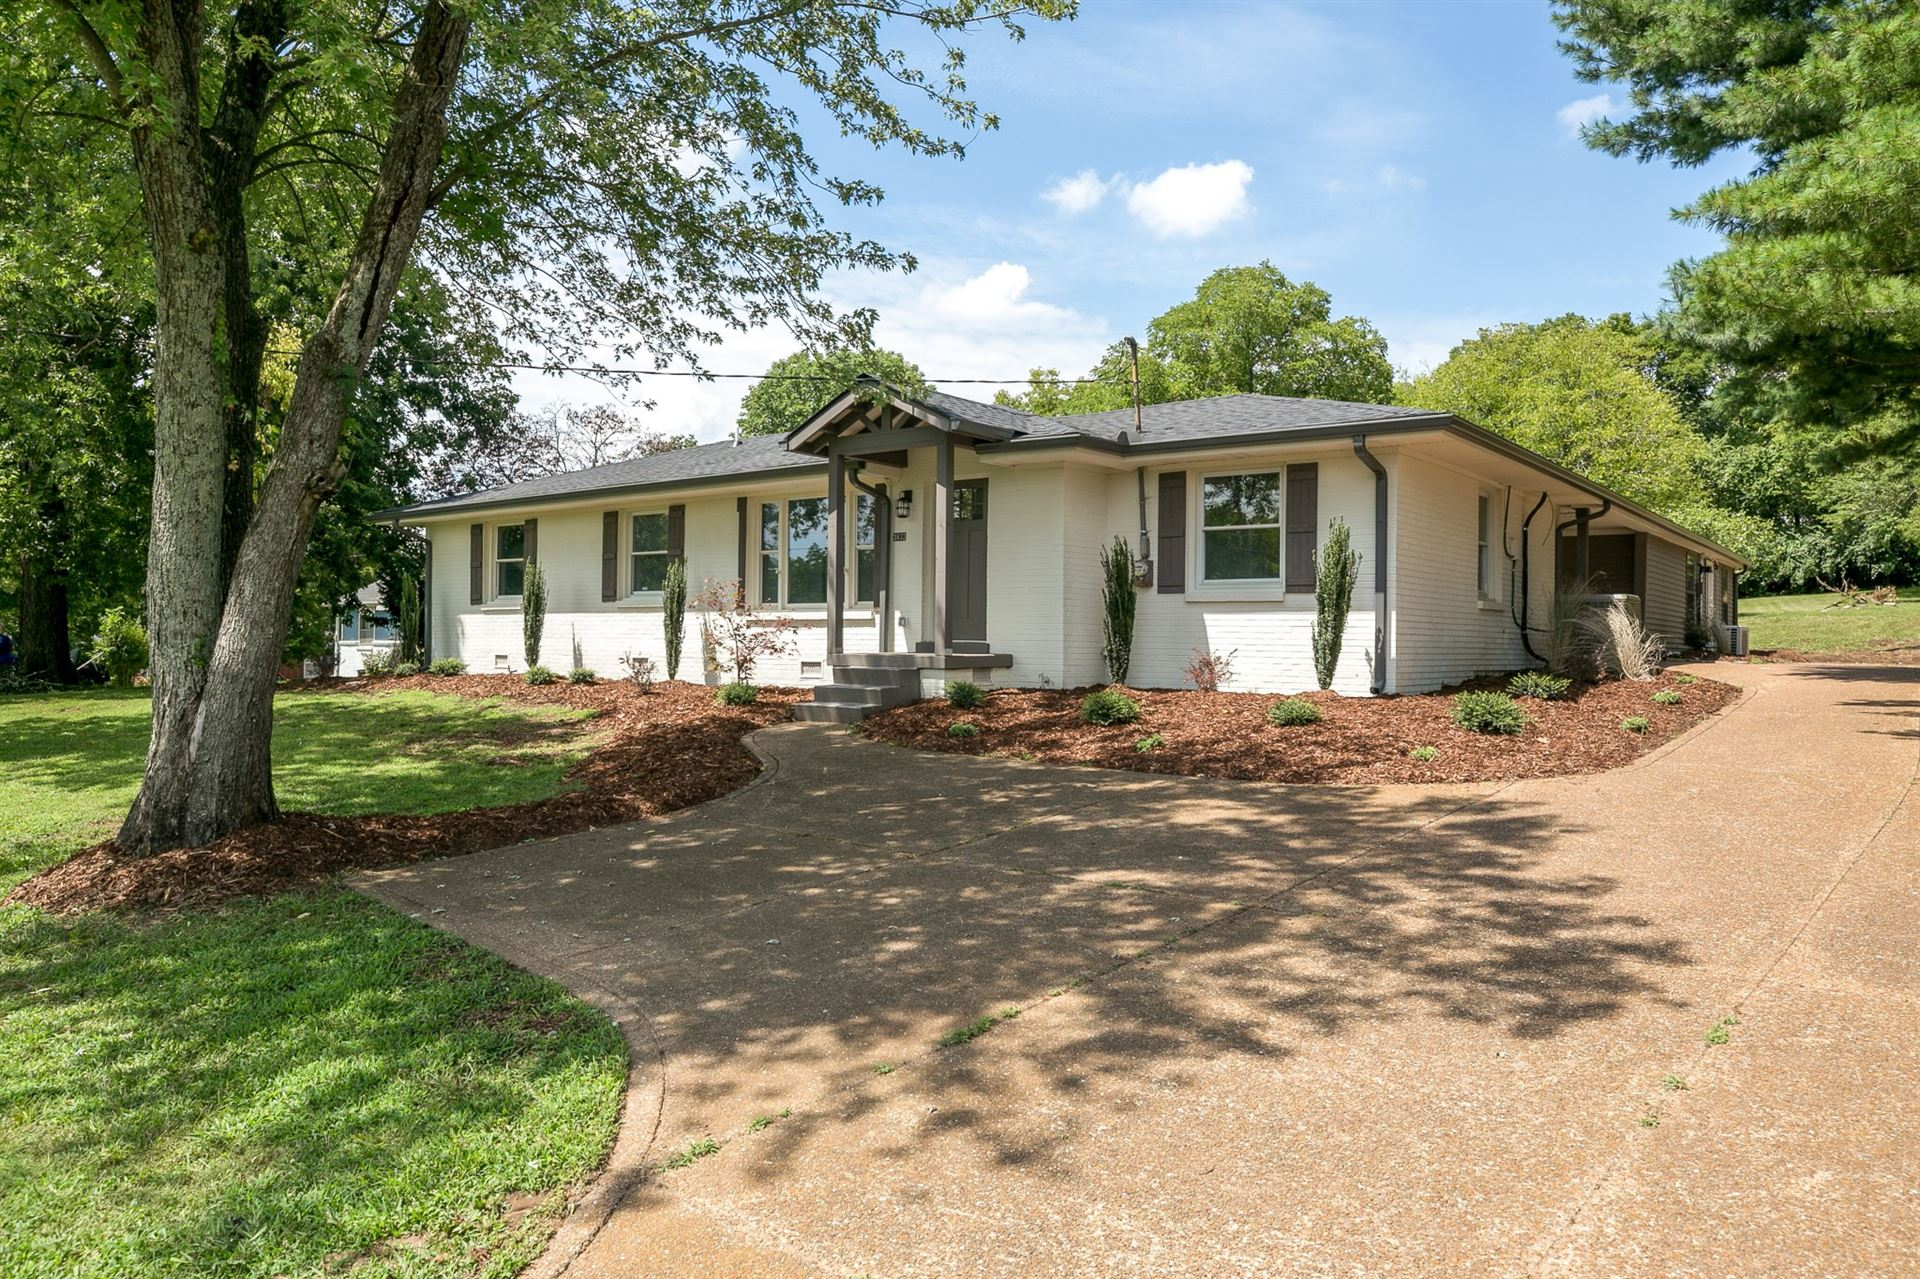 3832 Edwards Ave, Nashville, TN 37216 - MLS#: 2180361